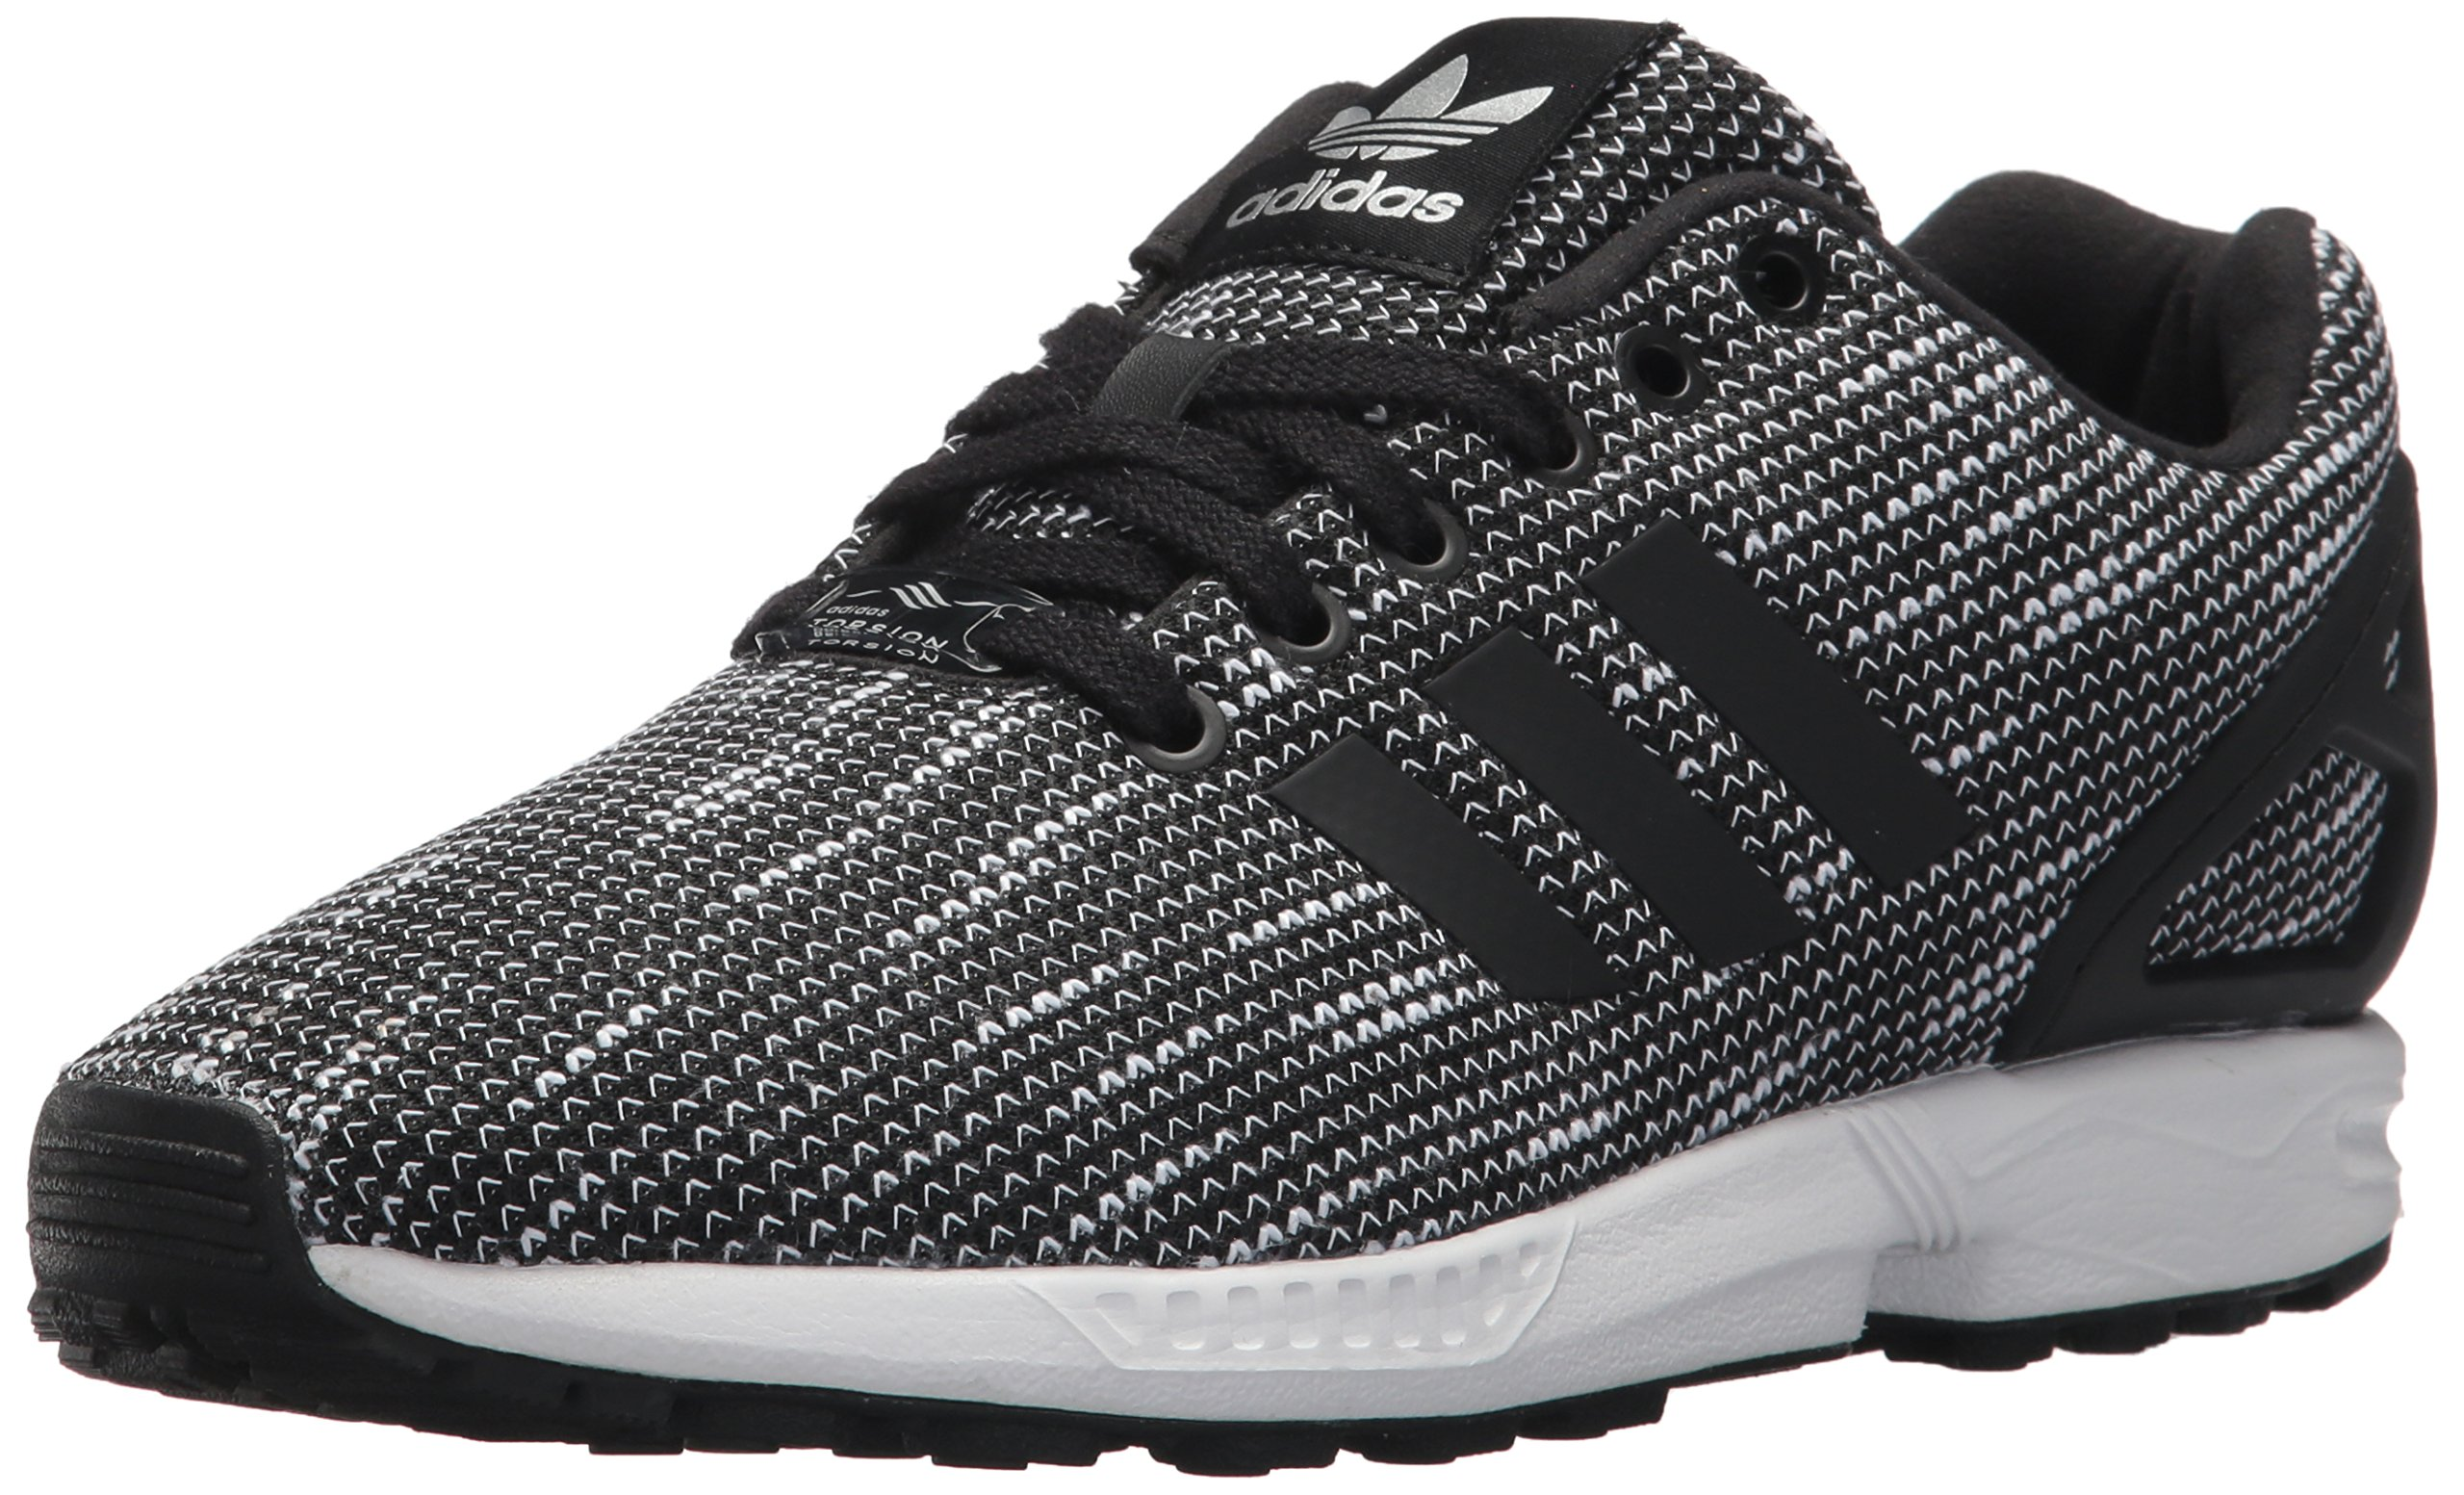 b25bfa520 Adidas Originals Zx Flux Black Top Deals   Lowest Price ...